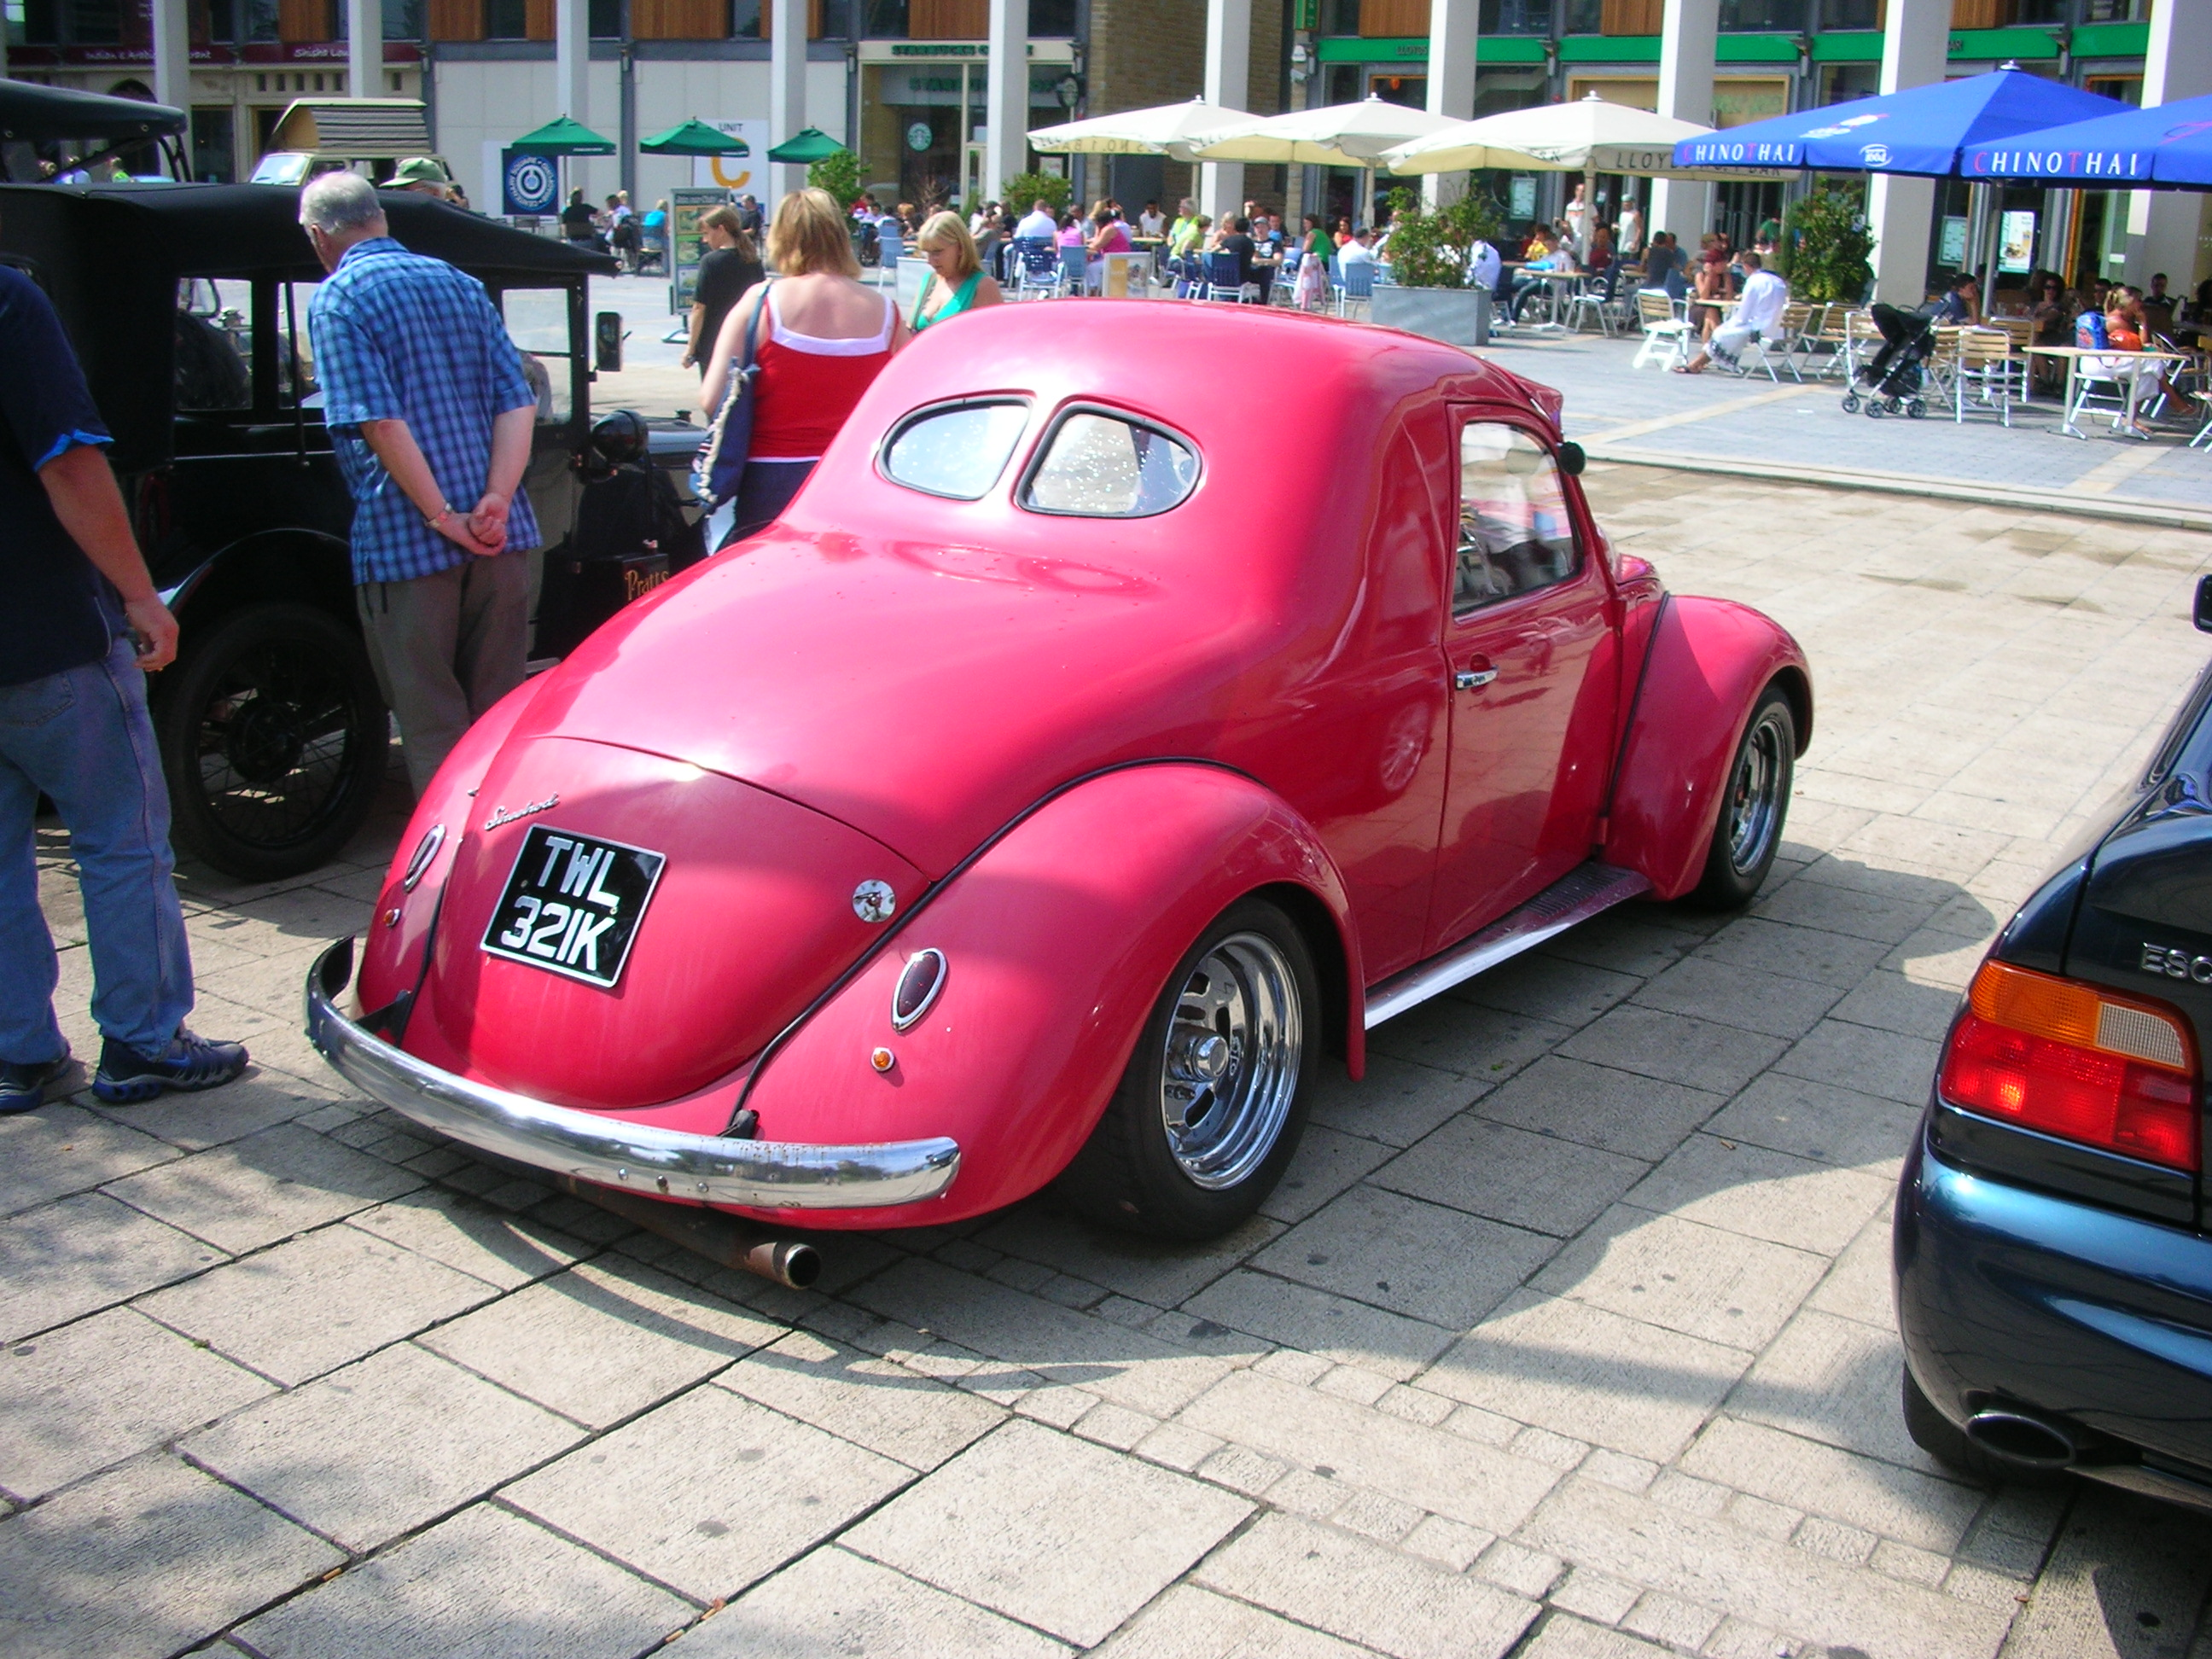 File:1971 VW Beetle Willys Coupe Replica (1).jpg - Wikimedia Commons